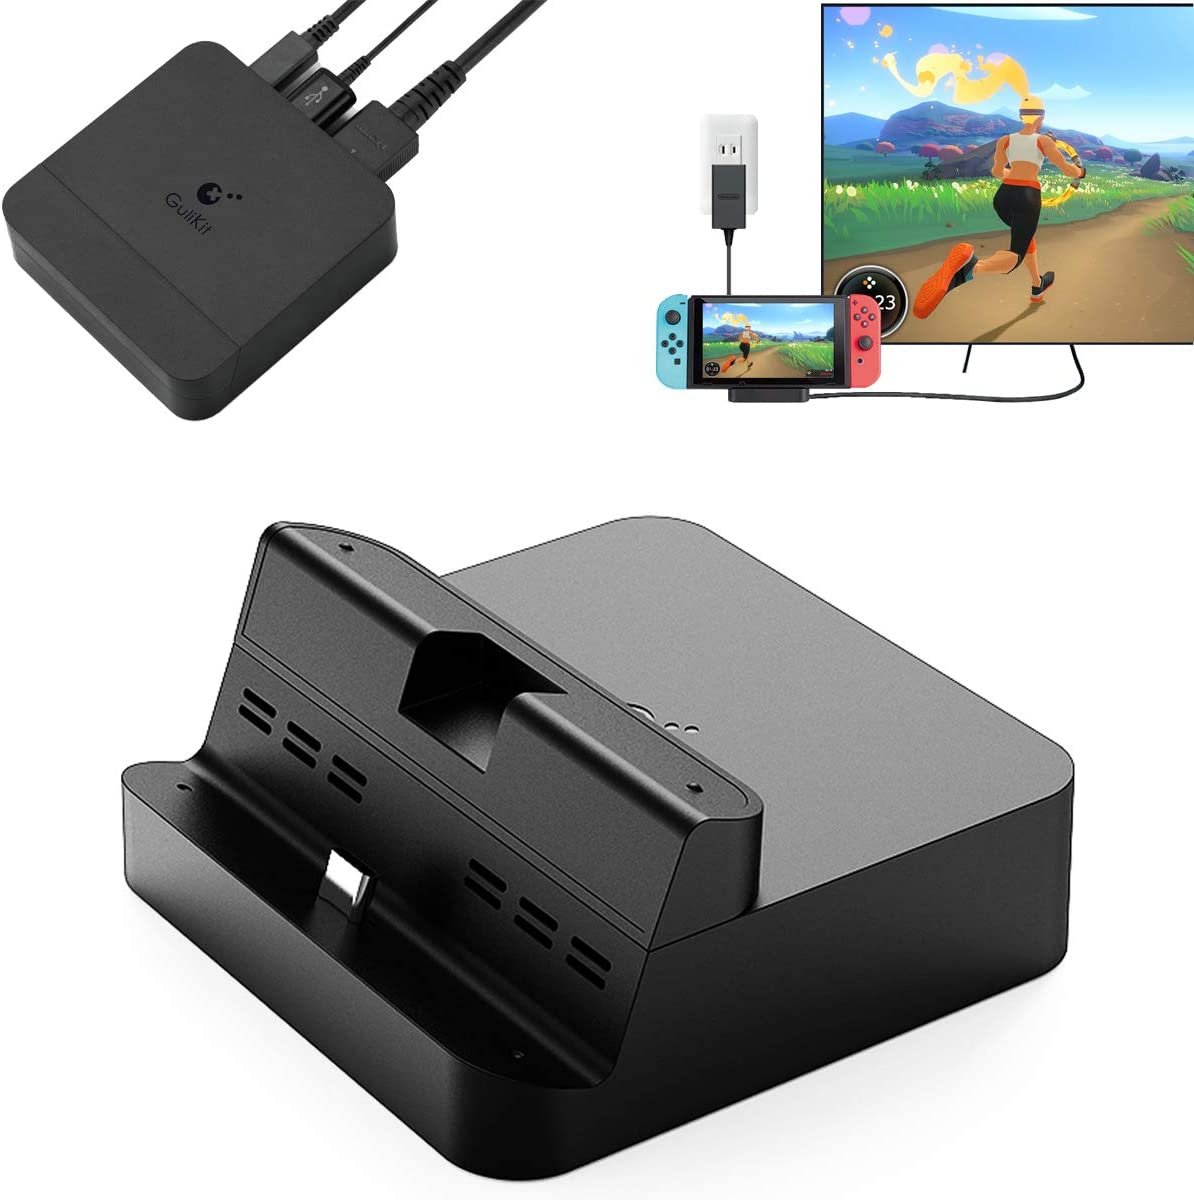 GuliKit Switch Docking Station, Portable TV Dock for Nintendo Switch with USB-C PD Charging Stand, HDMI Adapter and USB 3.0 Port, Support Samsung DeX Mode/Huawei PC Mode